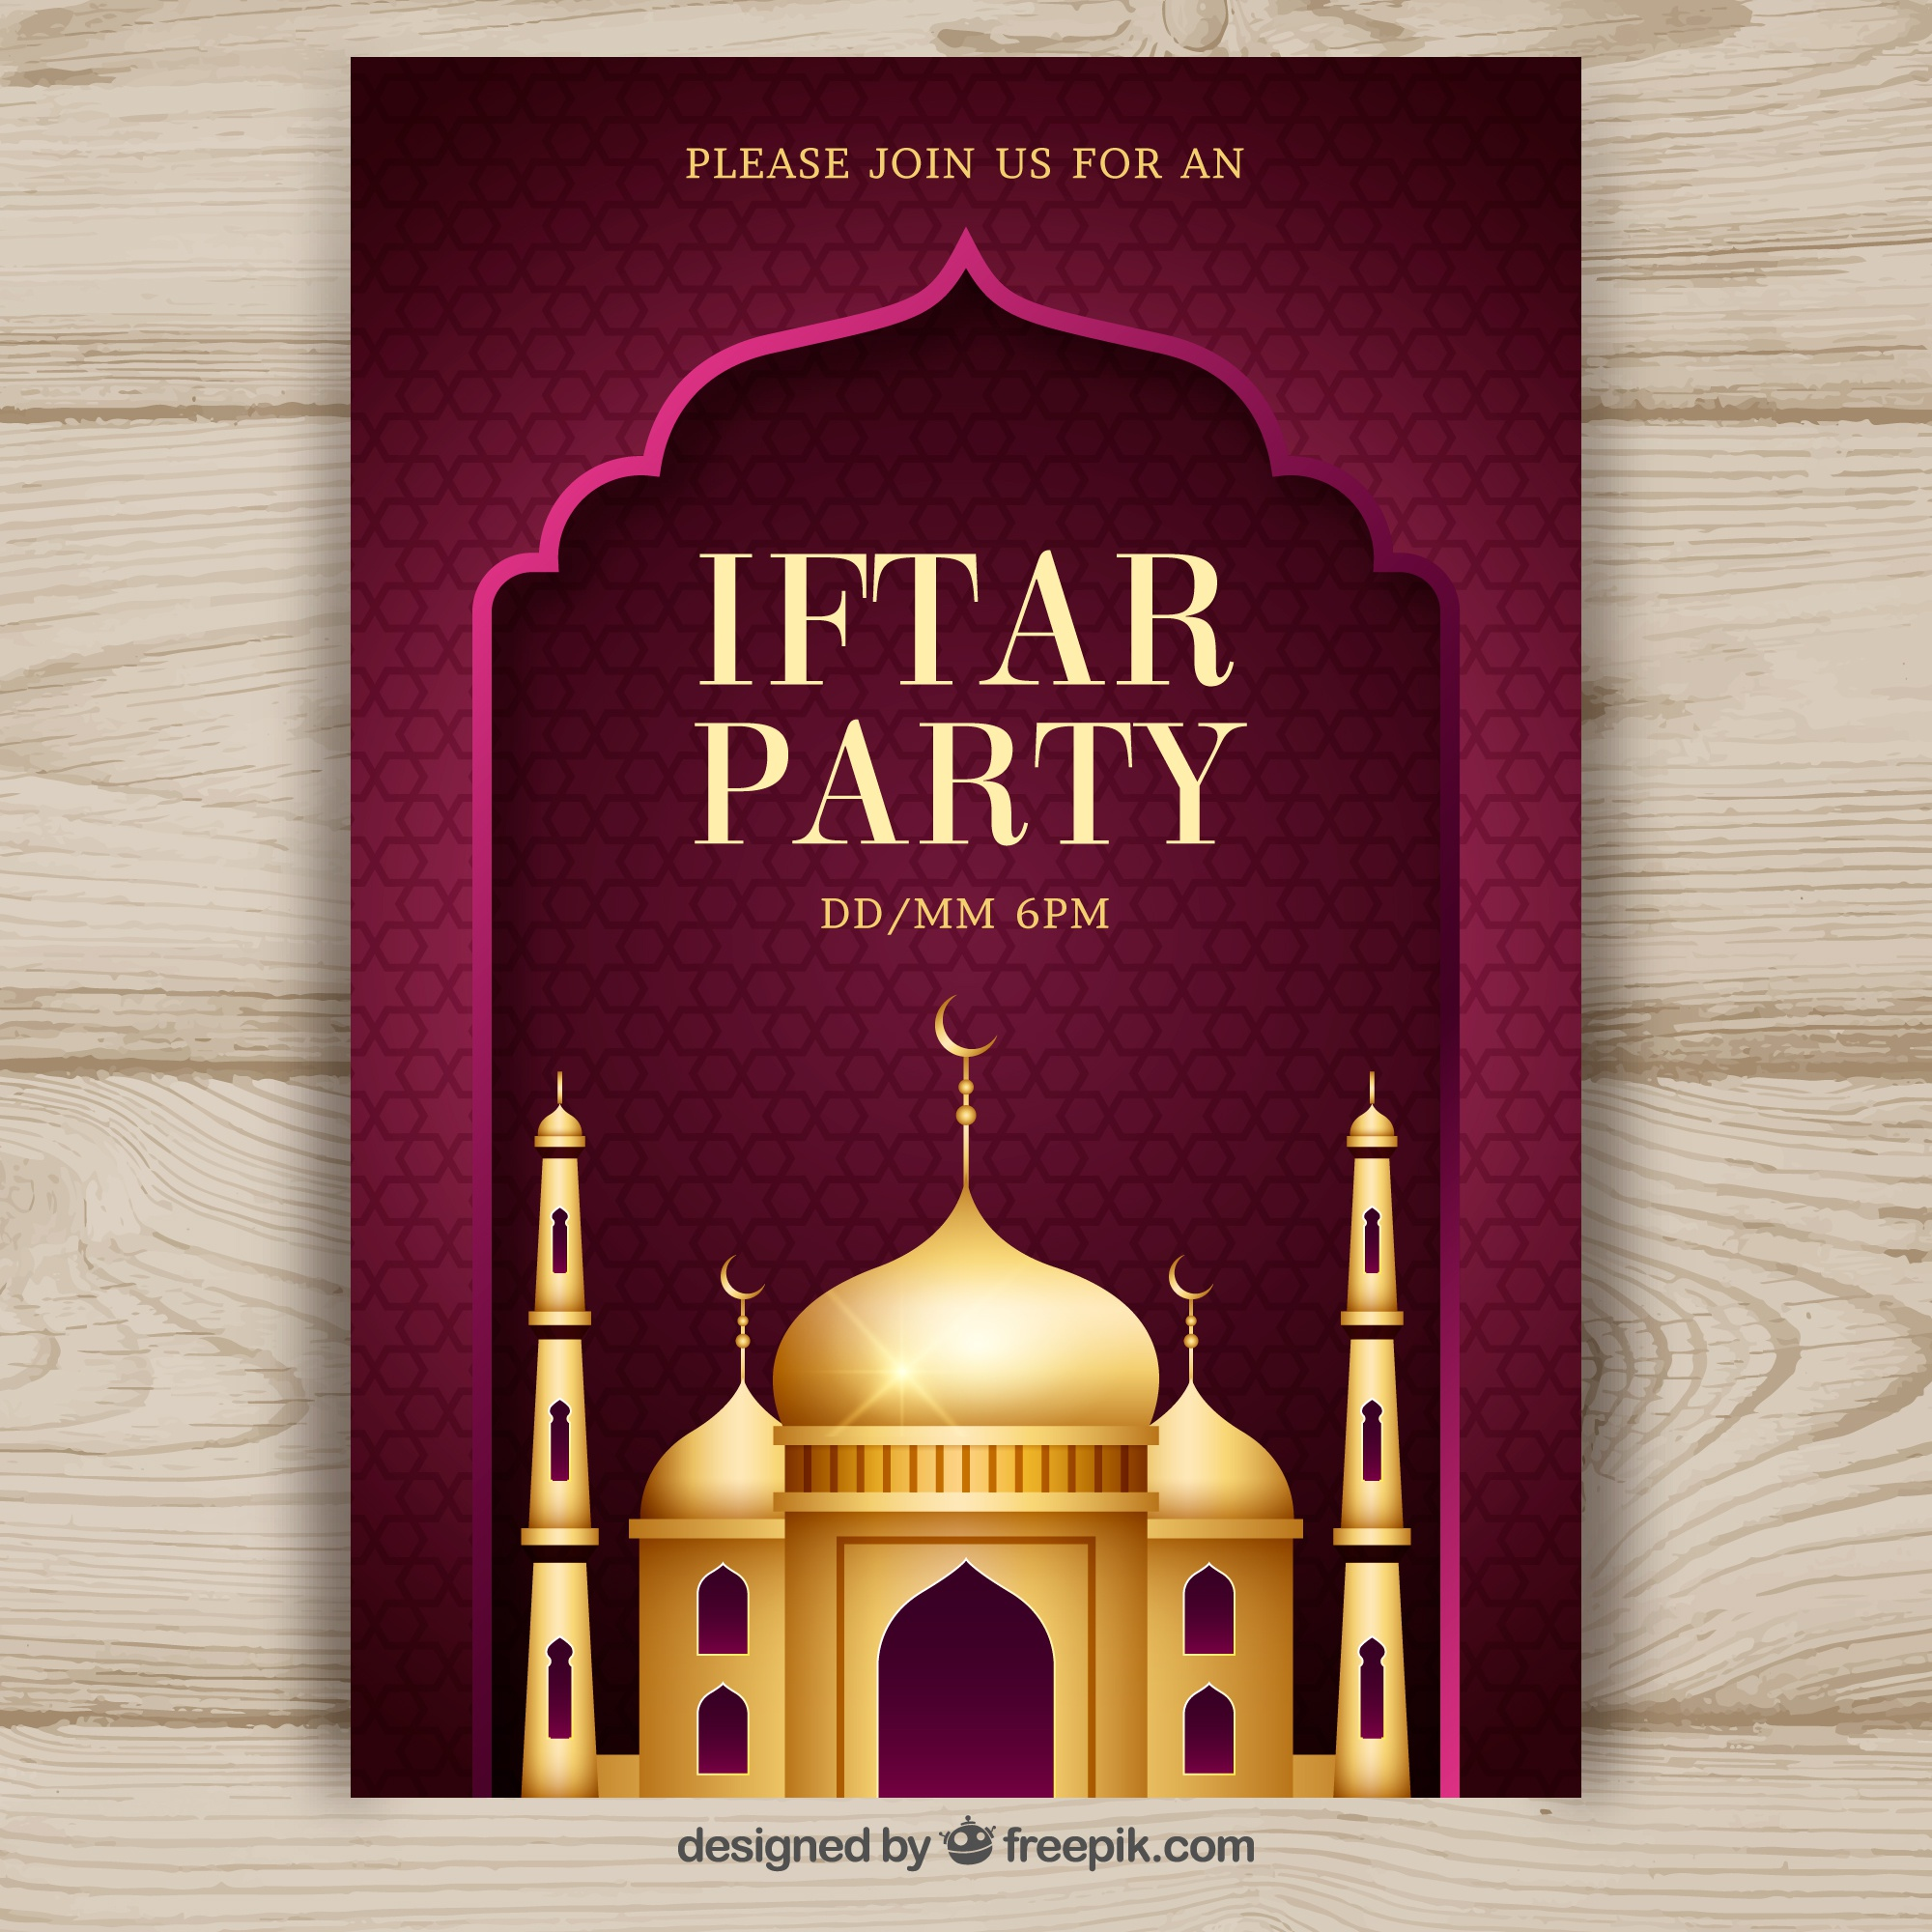 Iftar party invitation with golden mosque